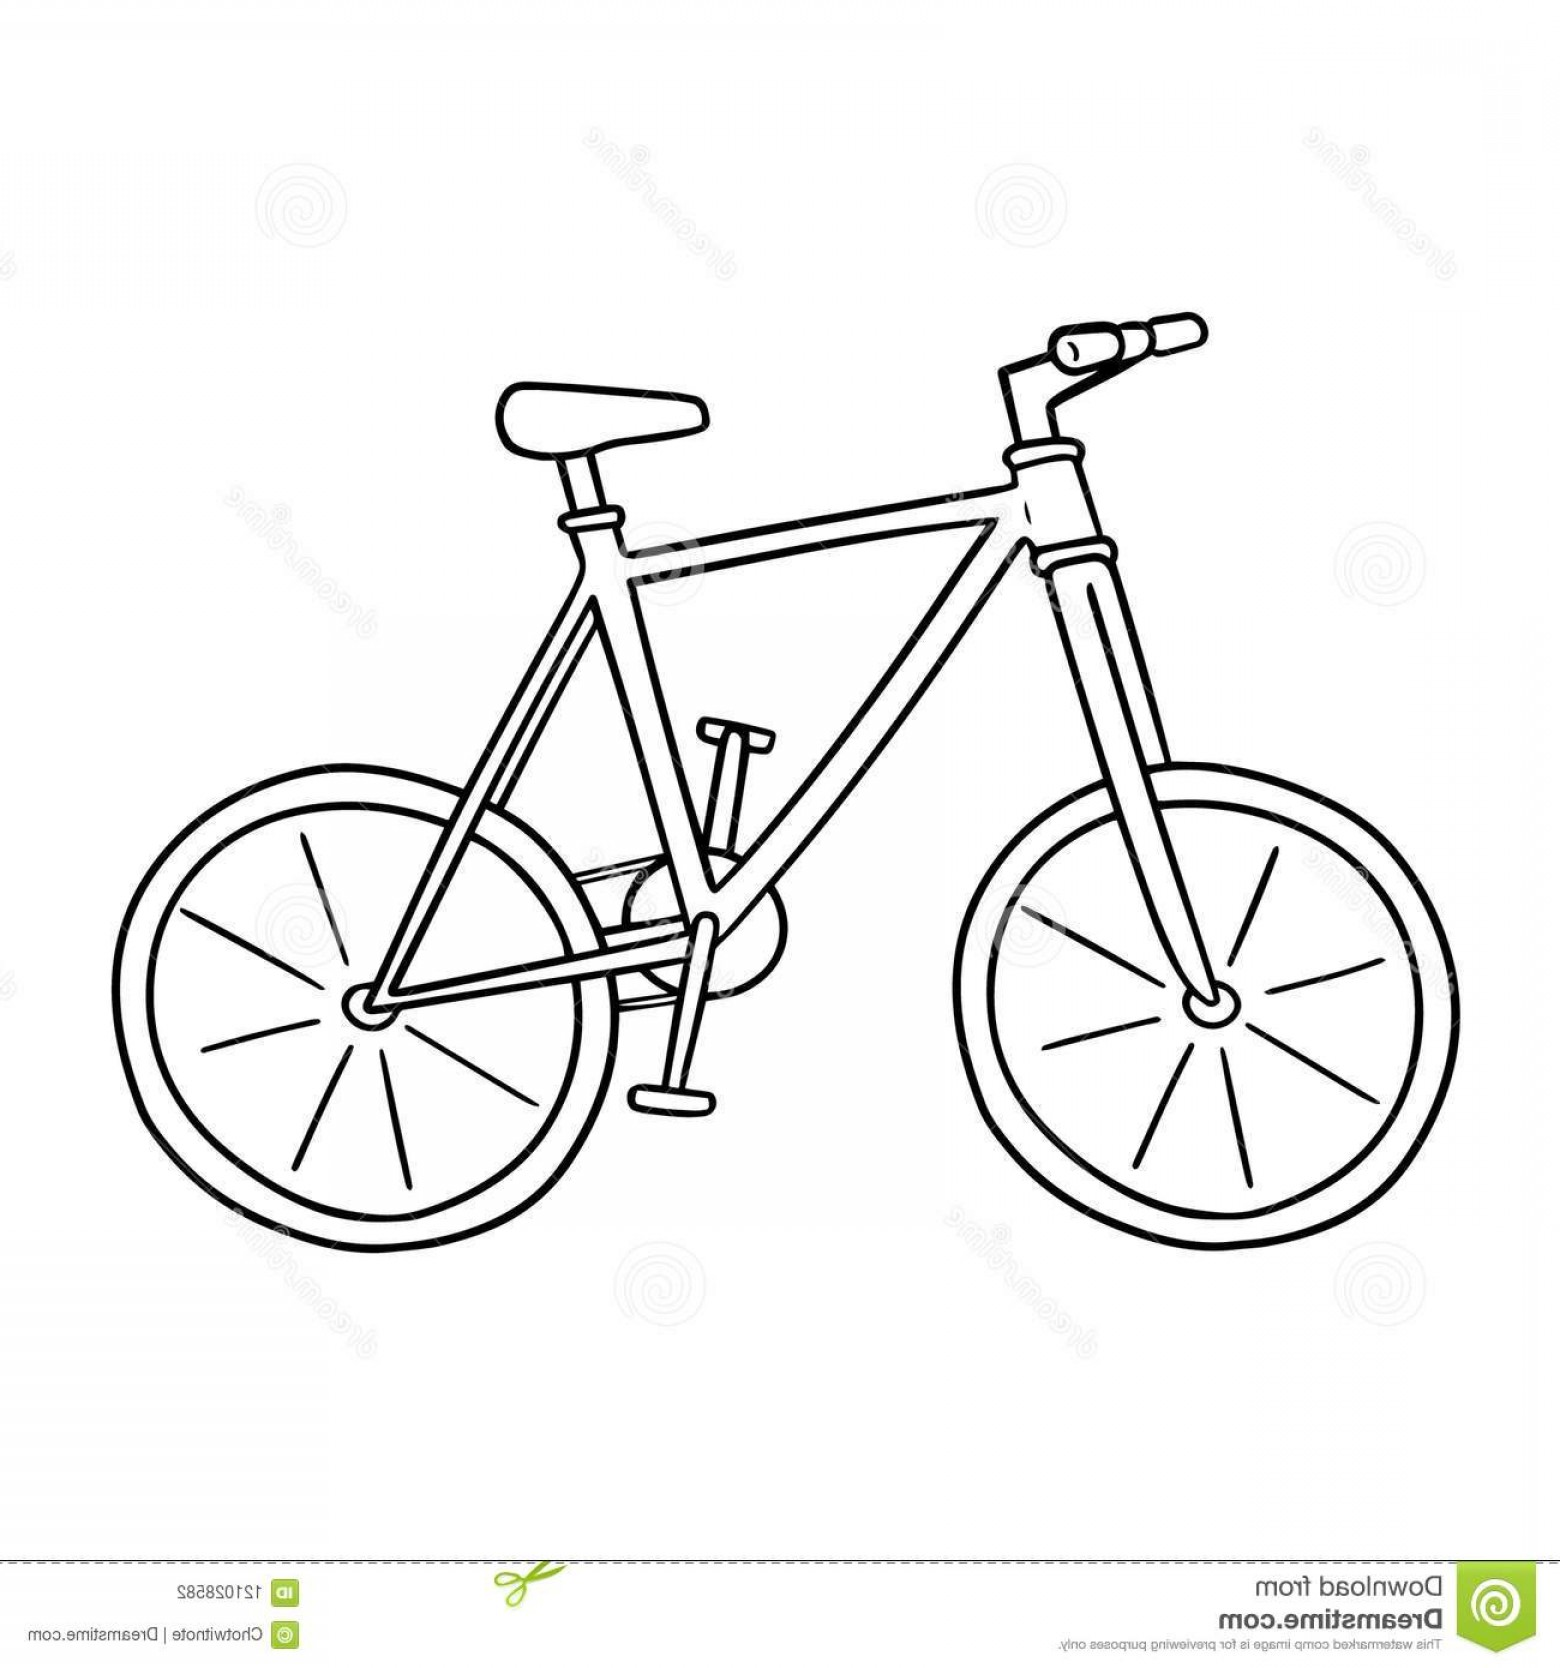 Bicycle Crank Vector Of Artwork: Vector Bicycle Hand Drawn Cartoon Doodle Illustration Vector Bicycle Image